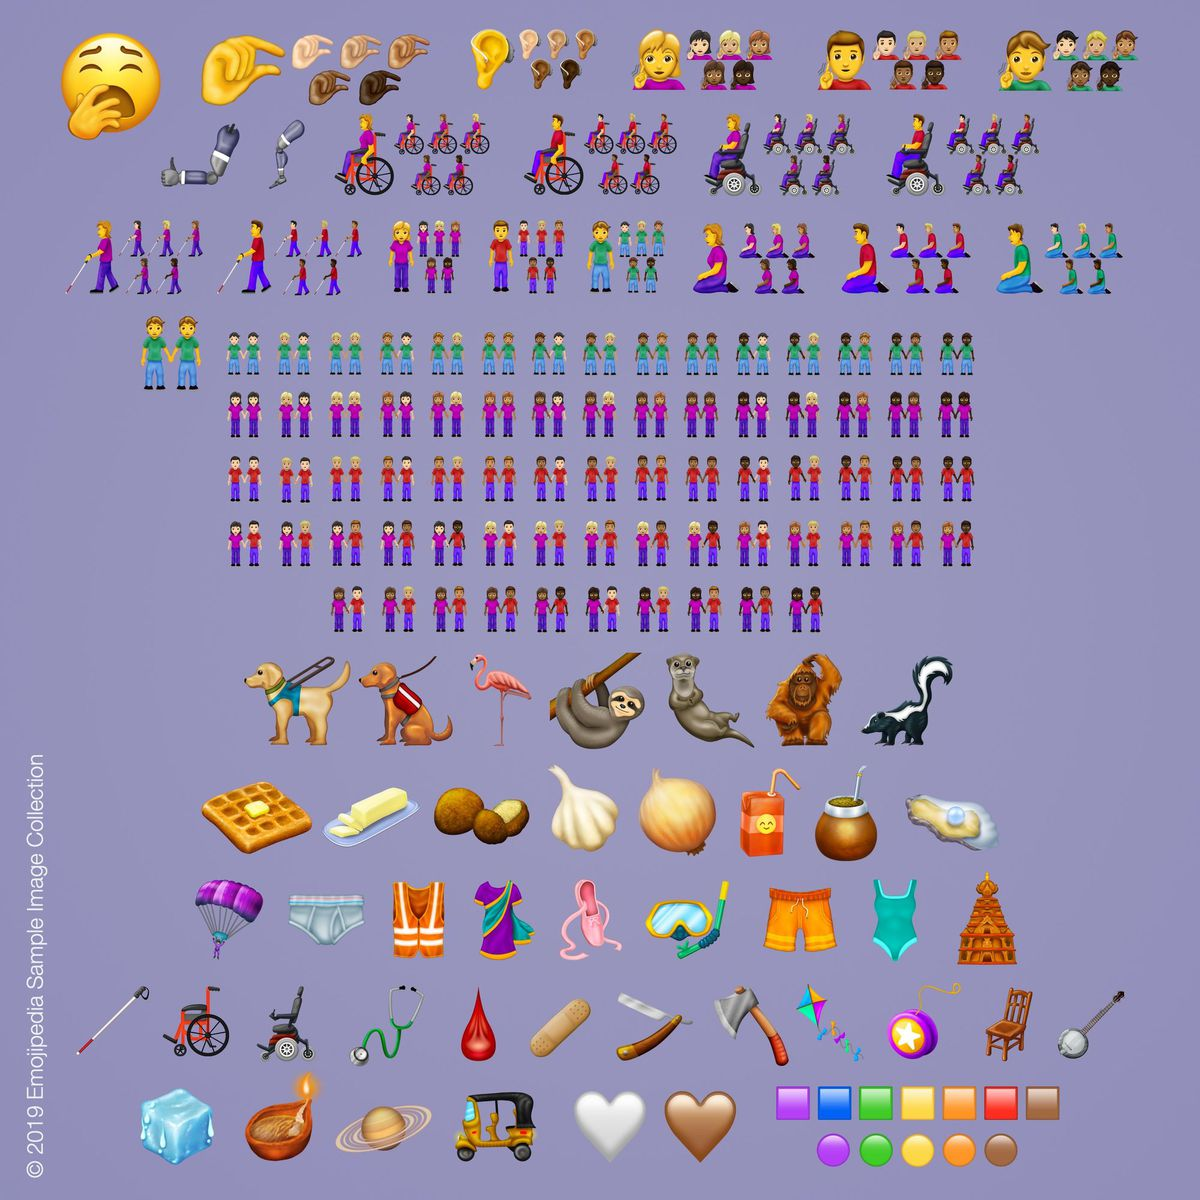 All the new emoji approved for 2019.